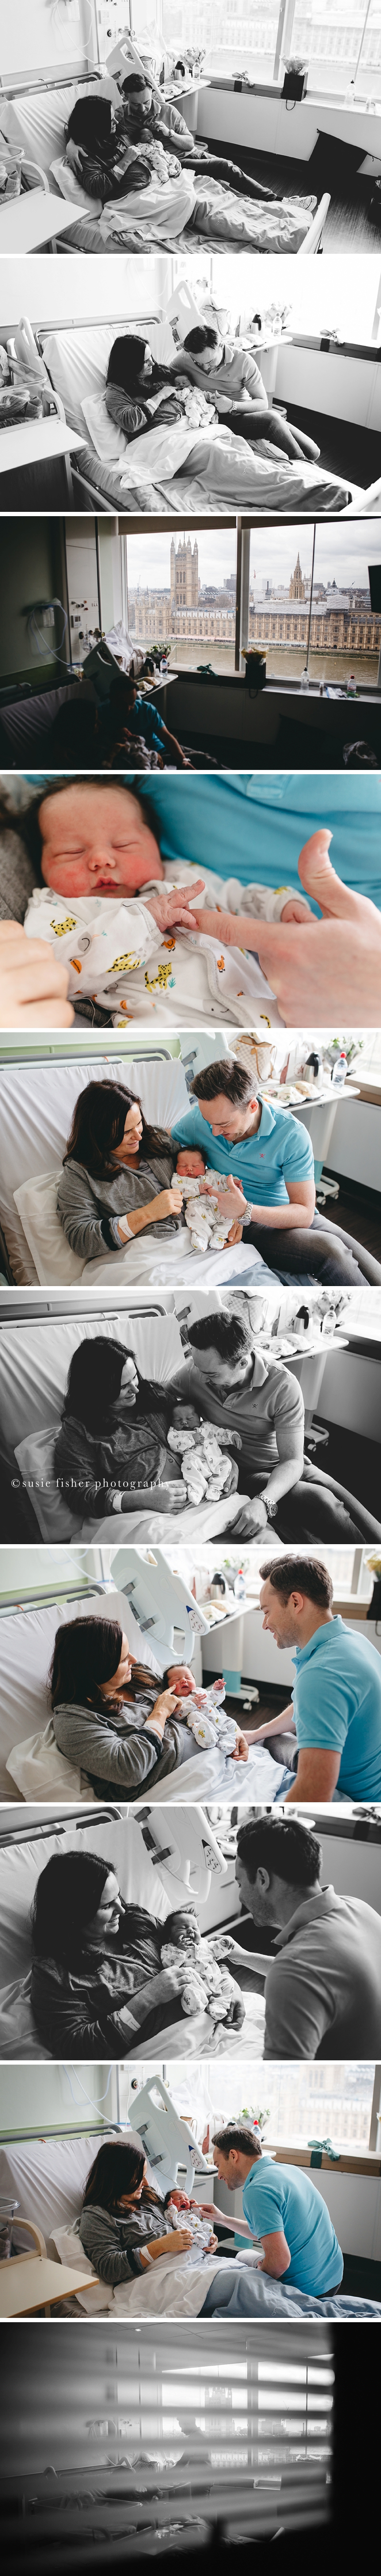 Newborn Family Photographs at Hospitals in Surrey_Copyright Susie Fisher Photography 2017